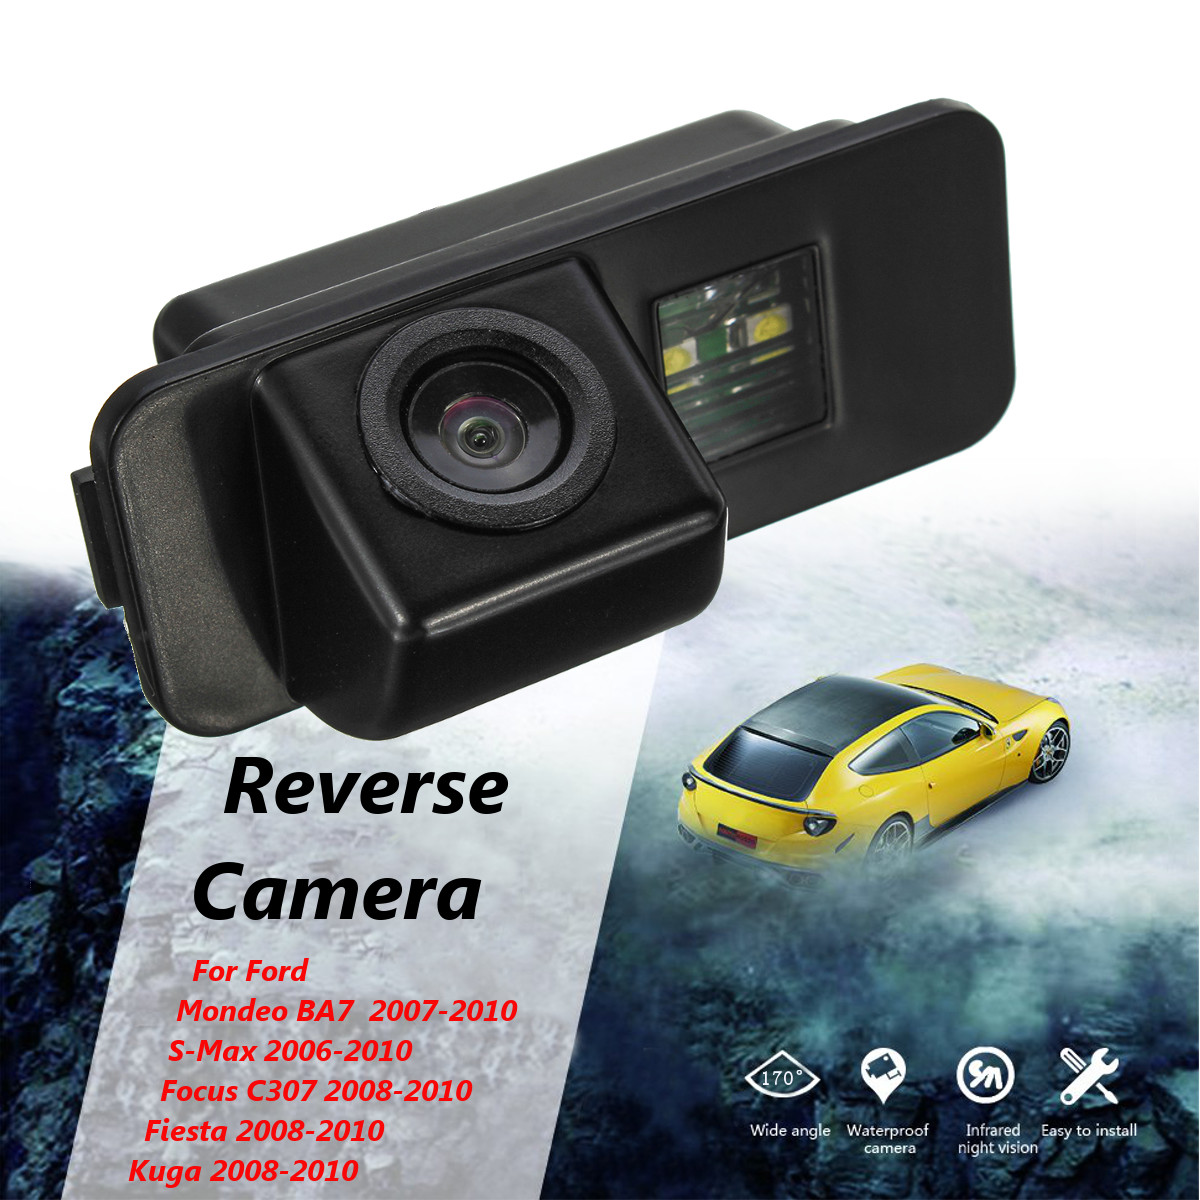 CCD Car Rear View Camera Backup Reverse Parking 170 Degree For Ford Mondeo BA7 S-Max Focus C307 Fiesta Kuga